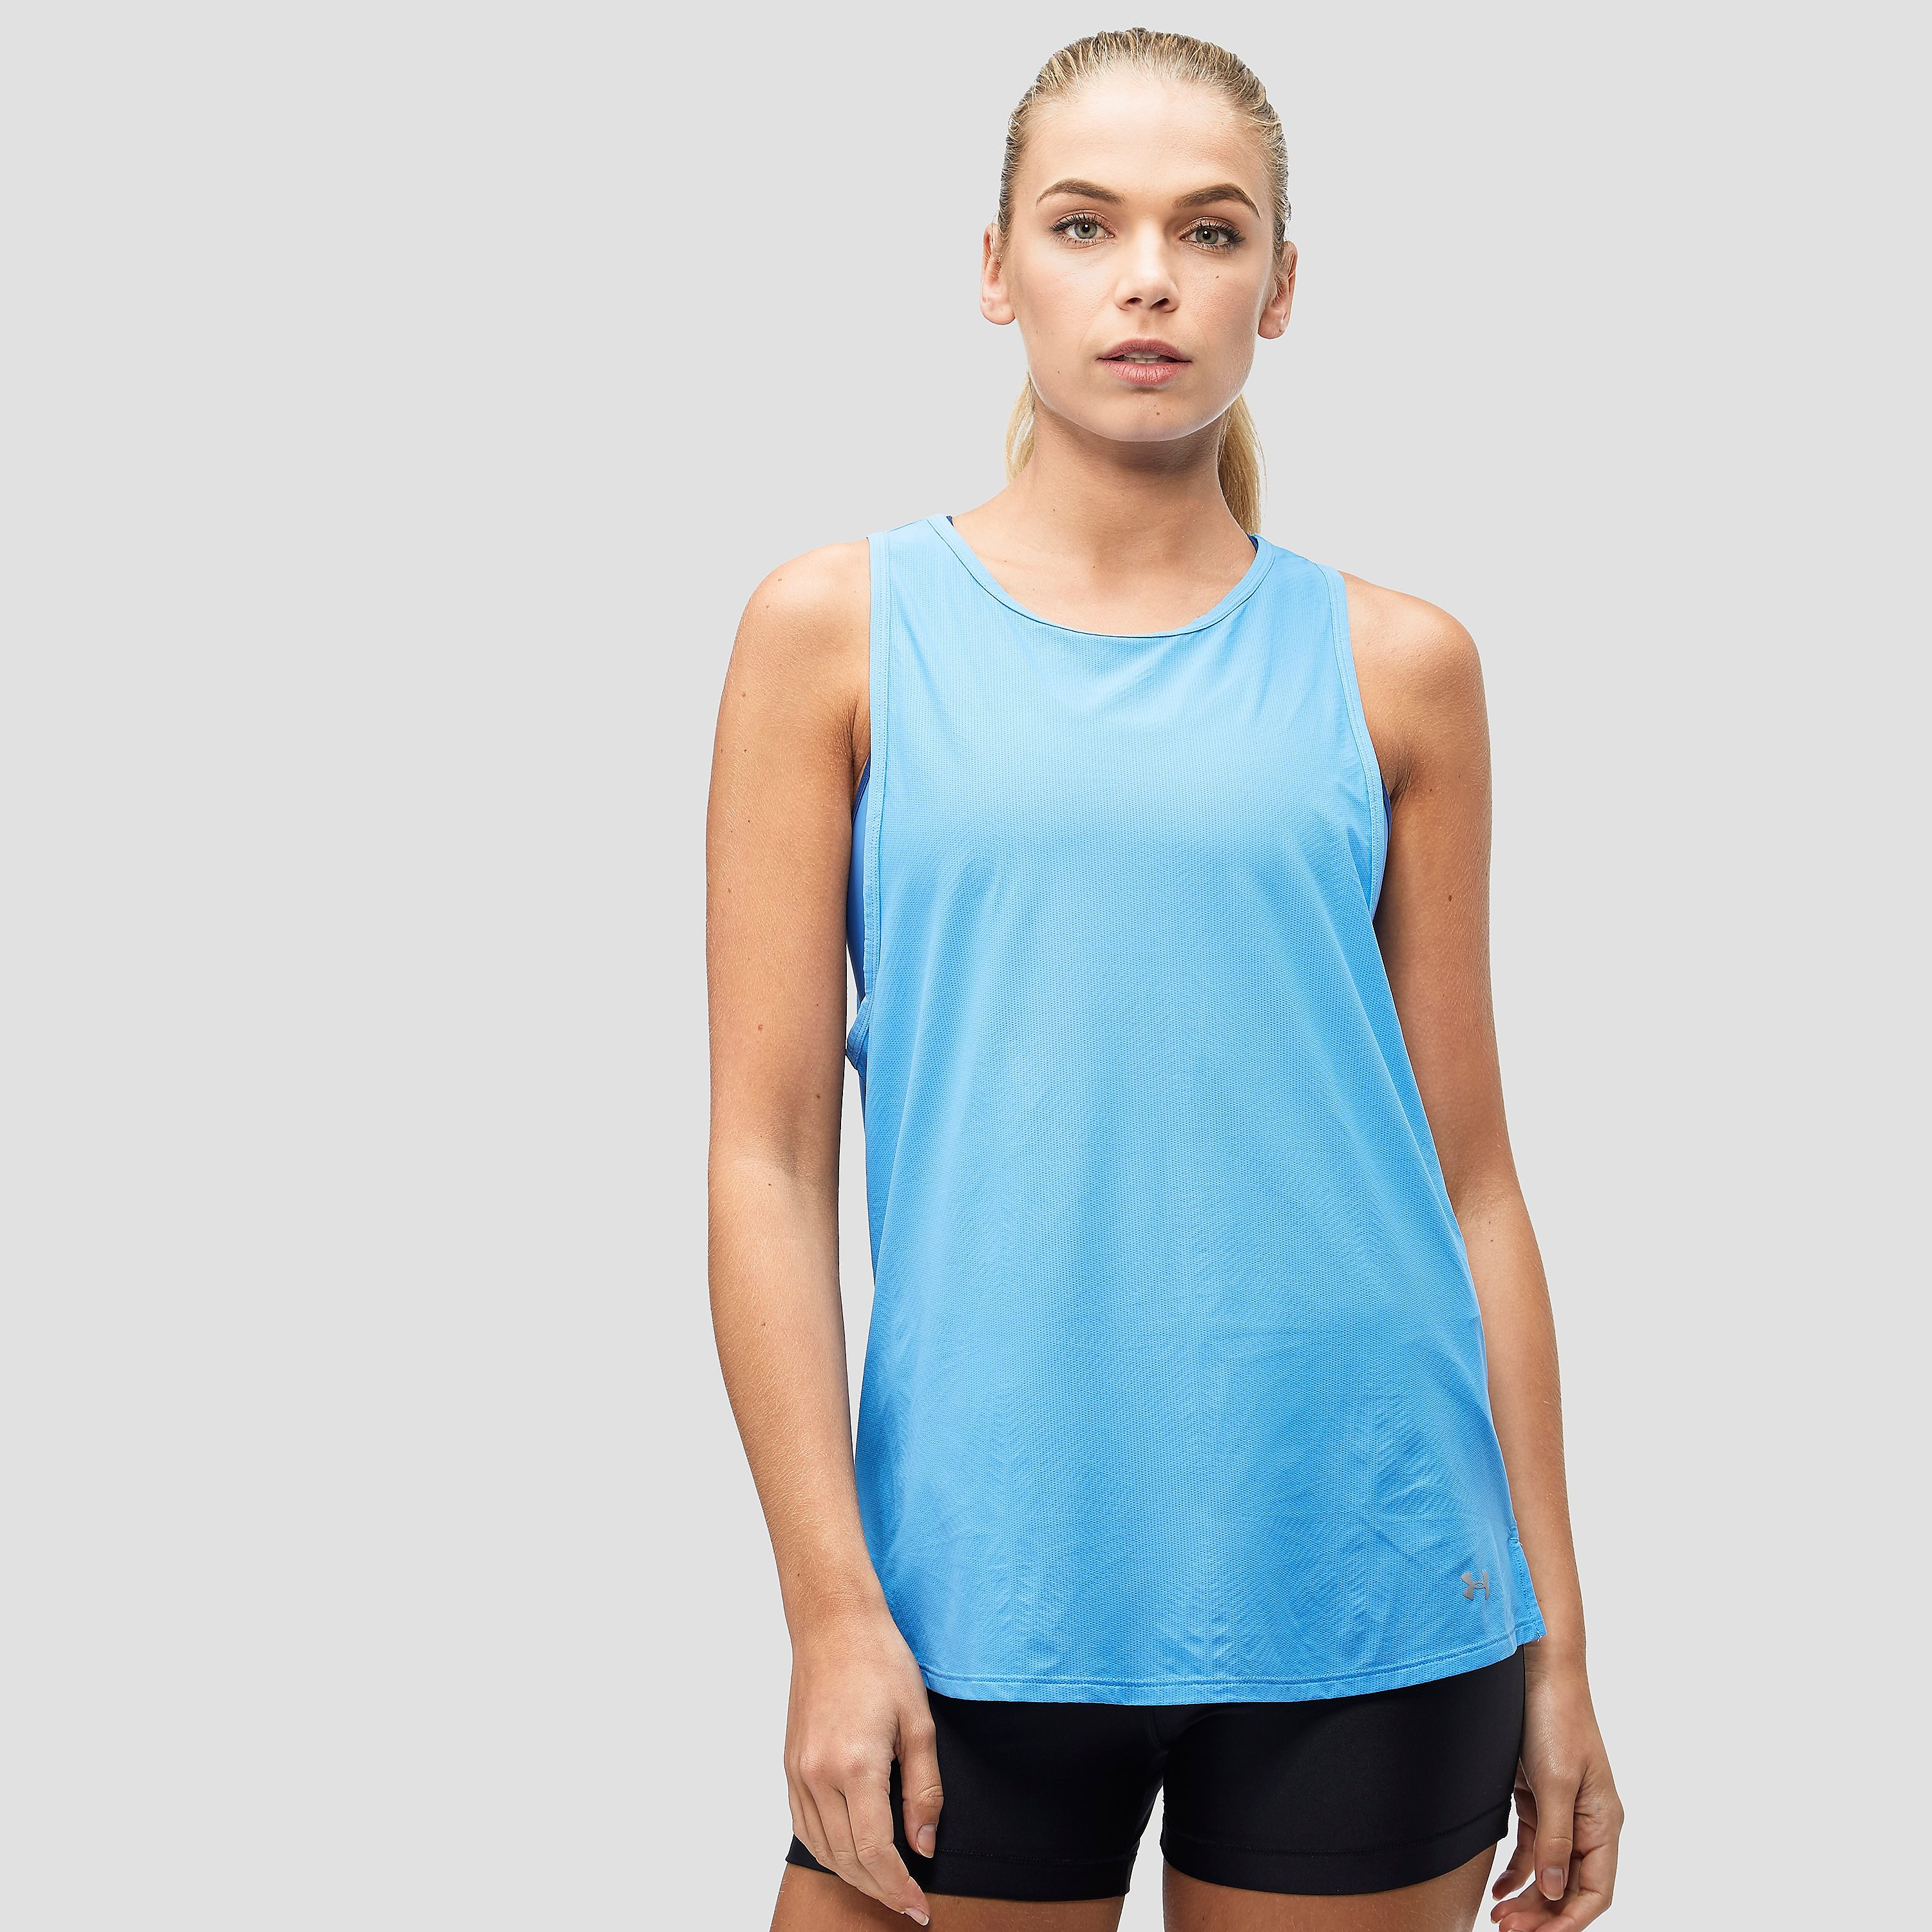 Under Armour Coolswitch Women's Running Tank Top